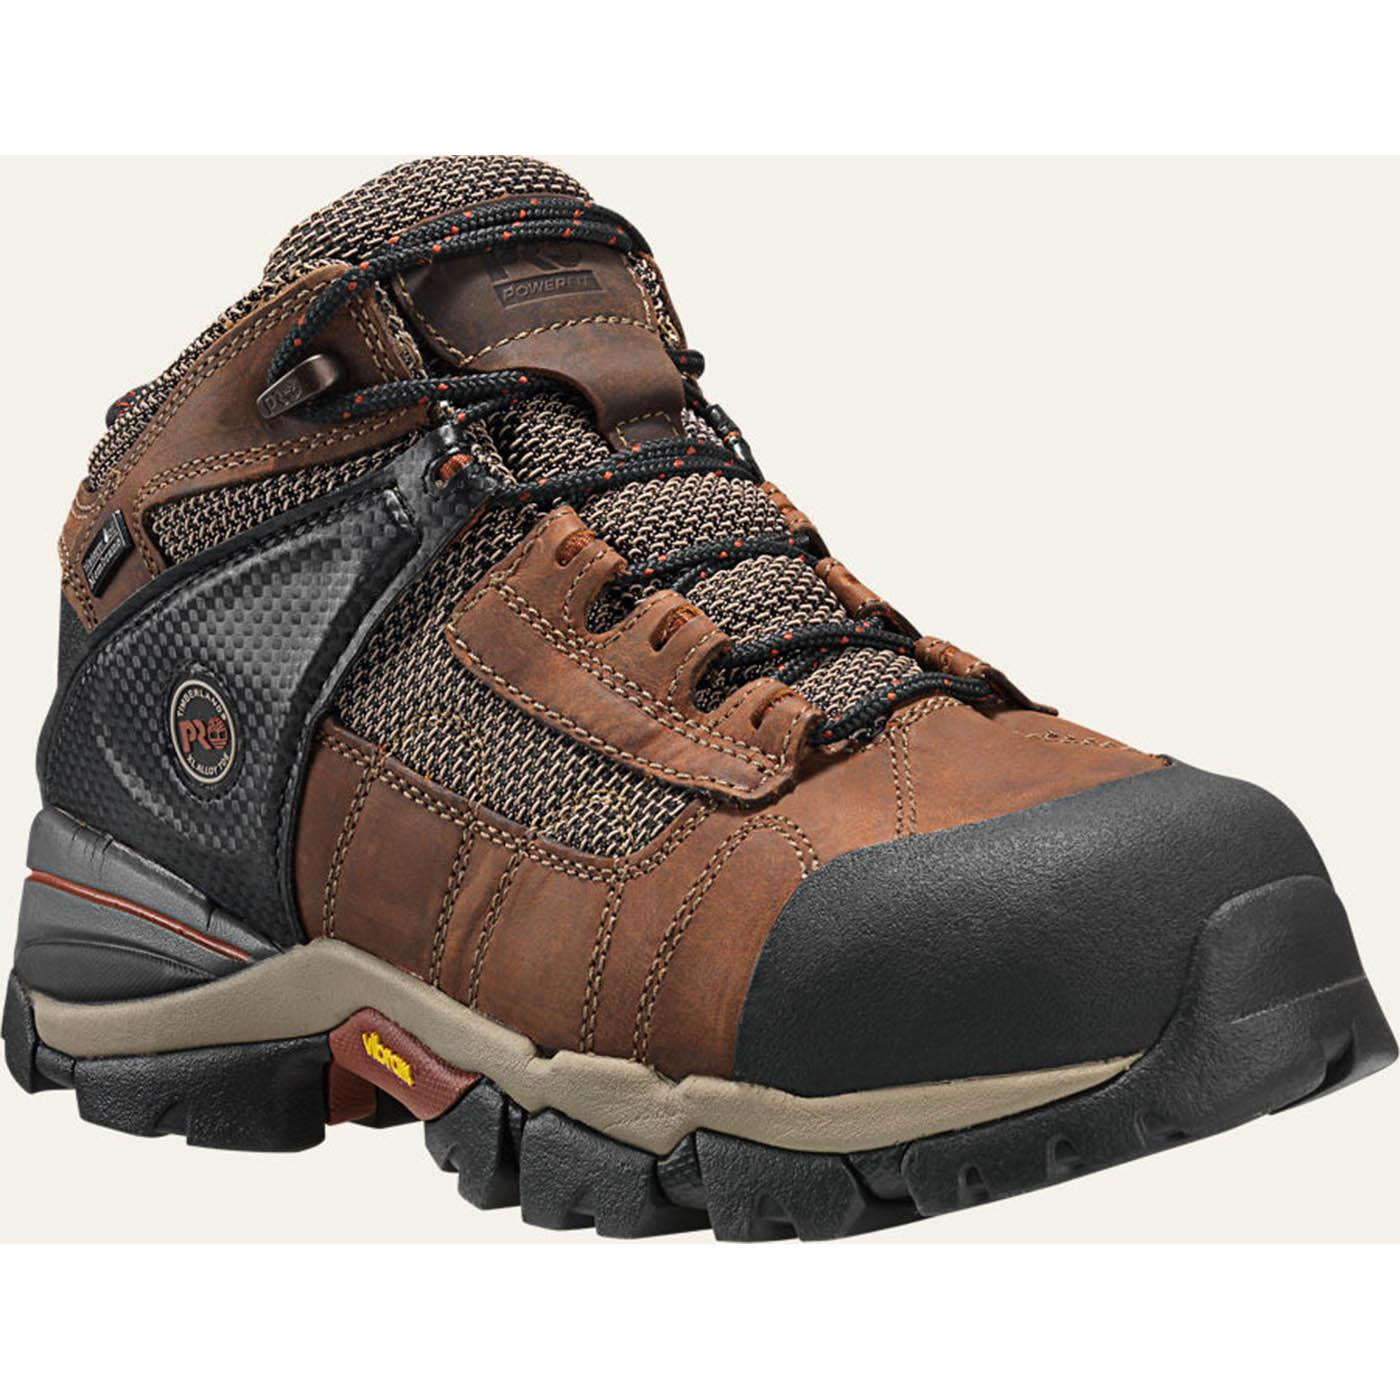 5098346cebc Timberland PRO Hyperion Alloy Toe Waterproof Work Hiker